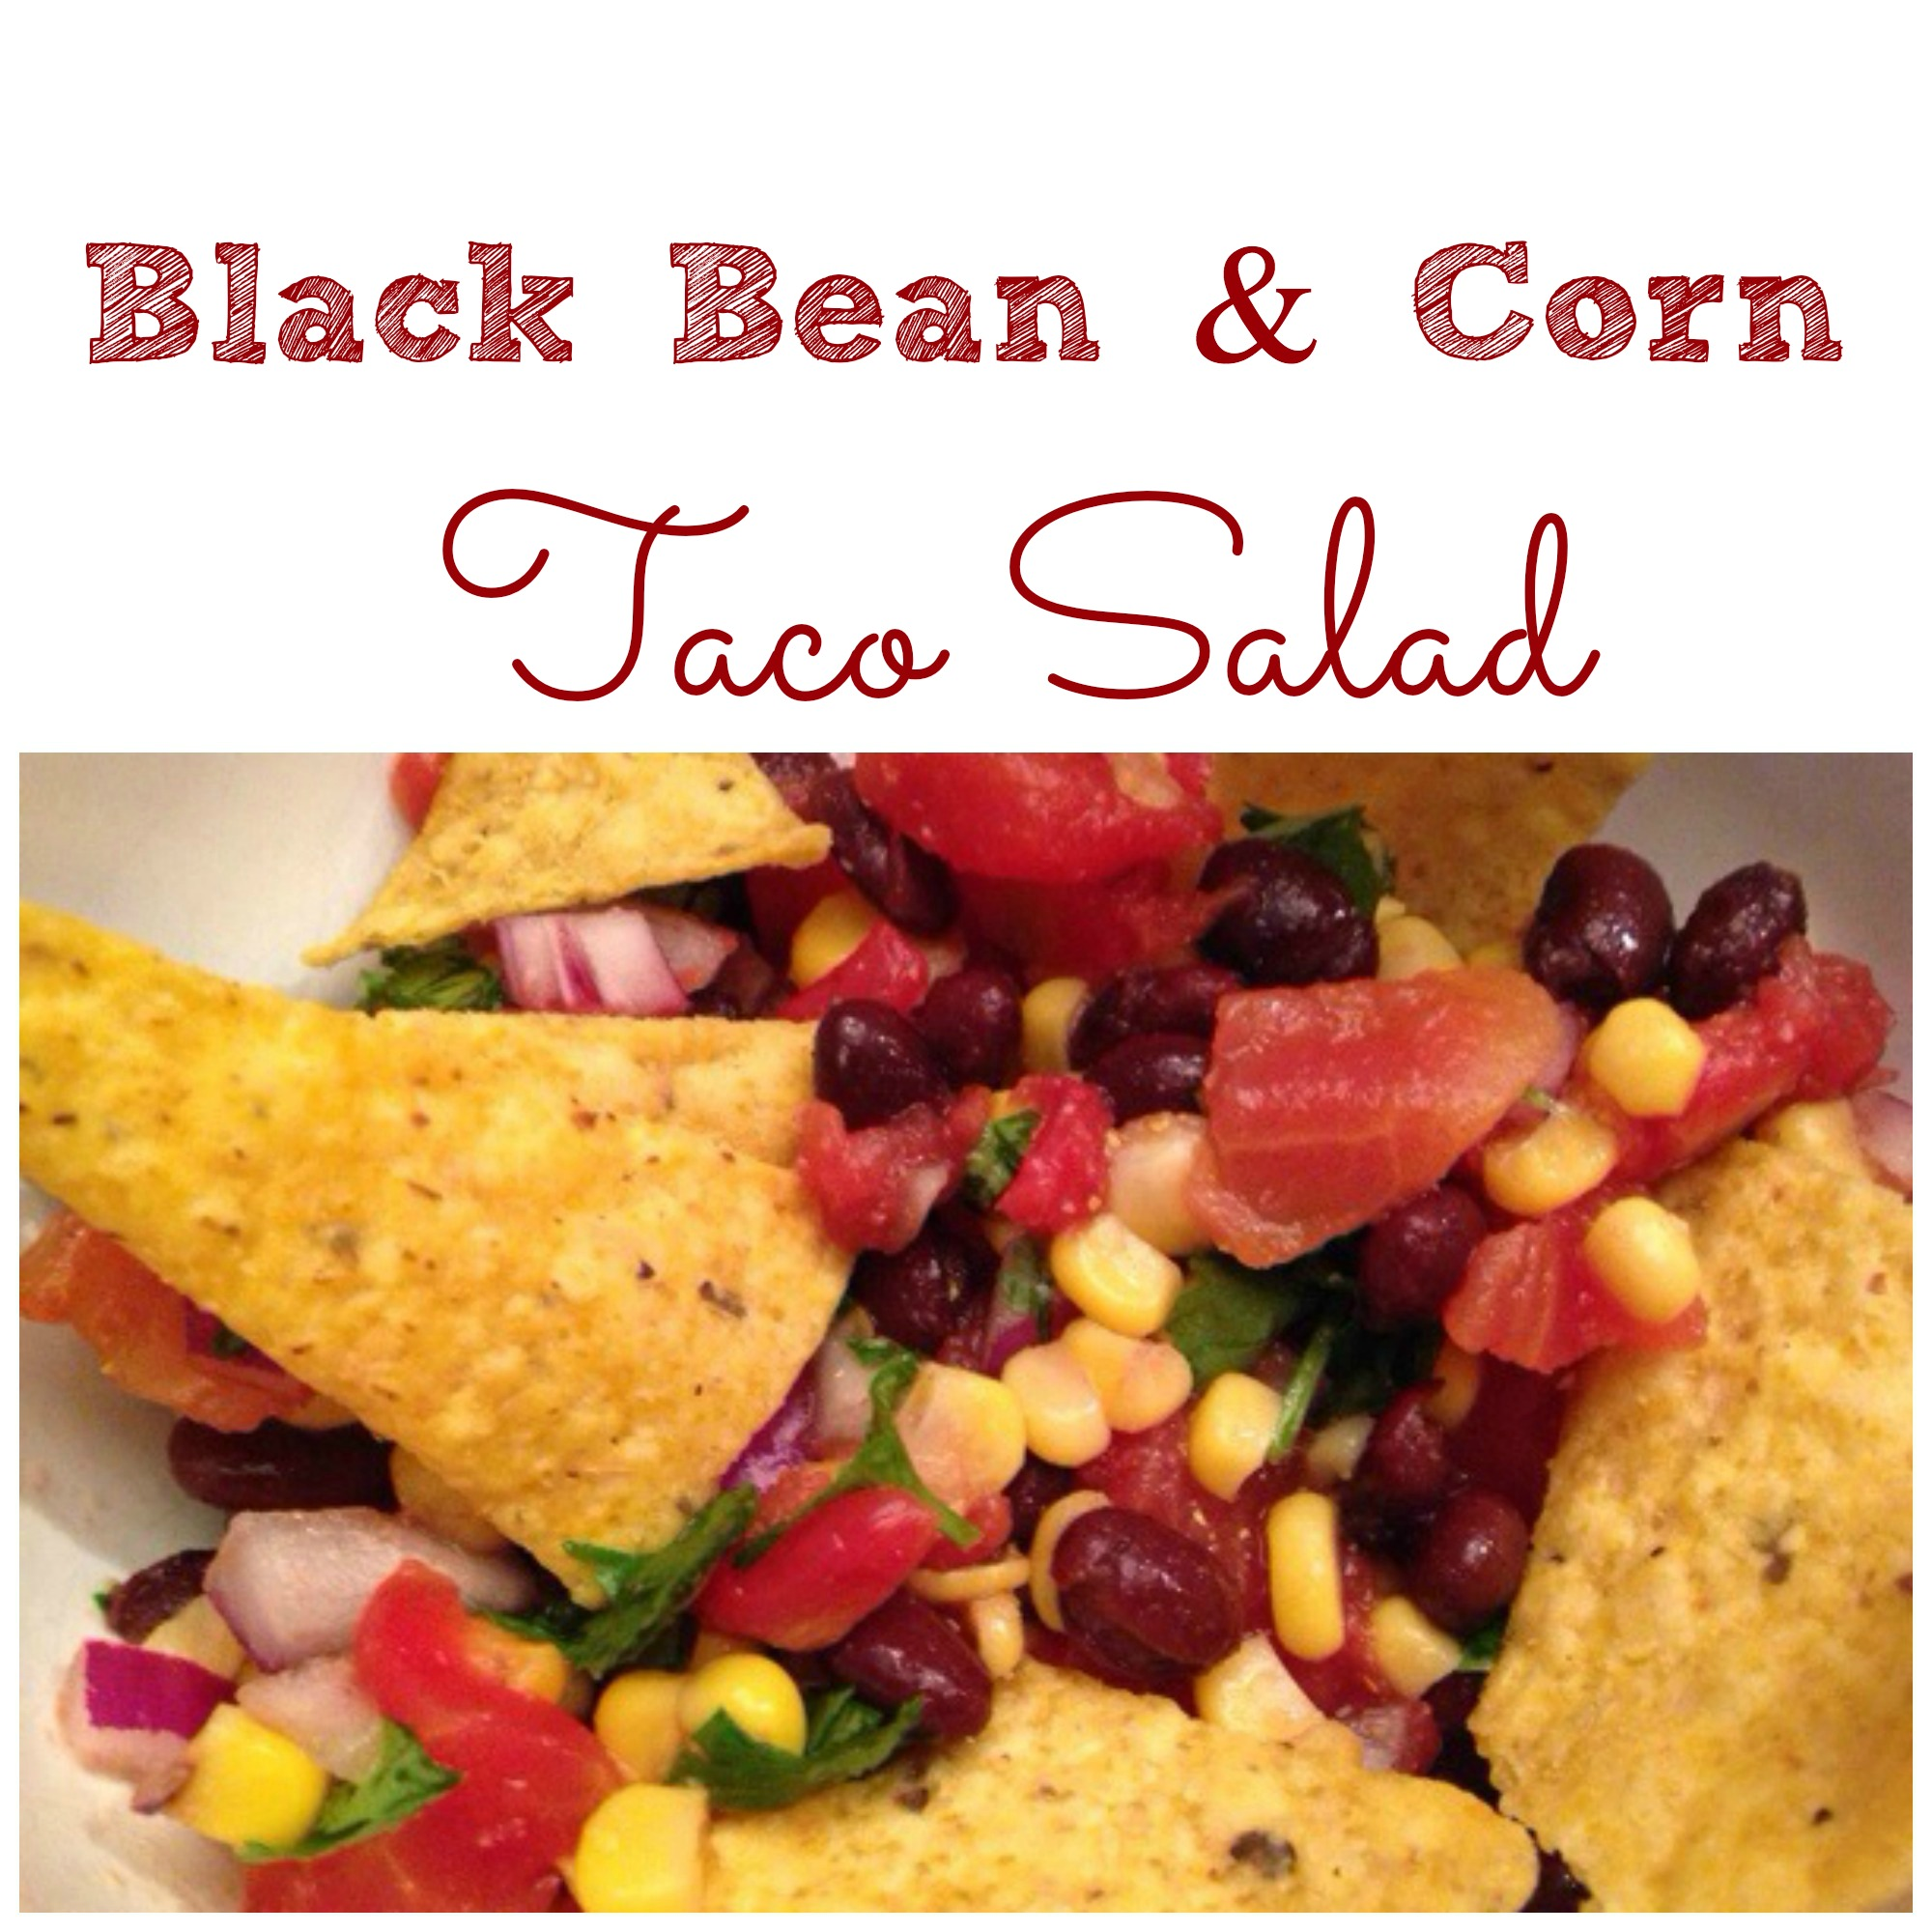 Chorizo-Taco-with-Corn-and-Black-Bean-Salsa.jpg